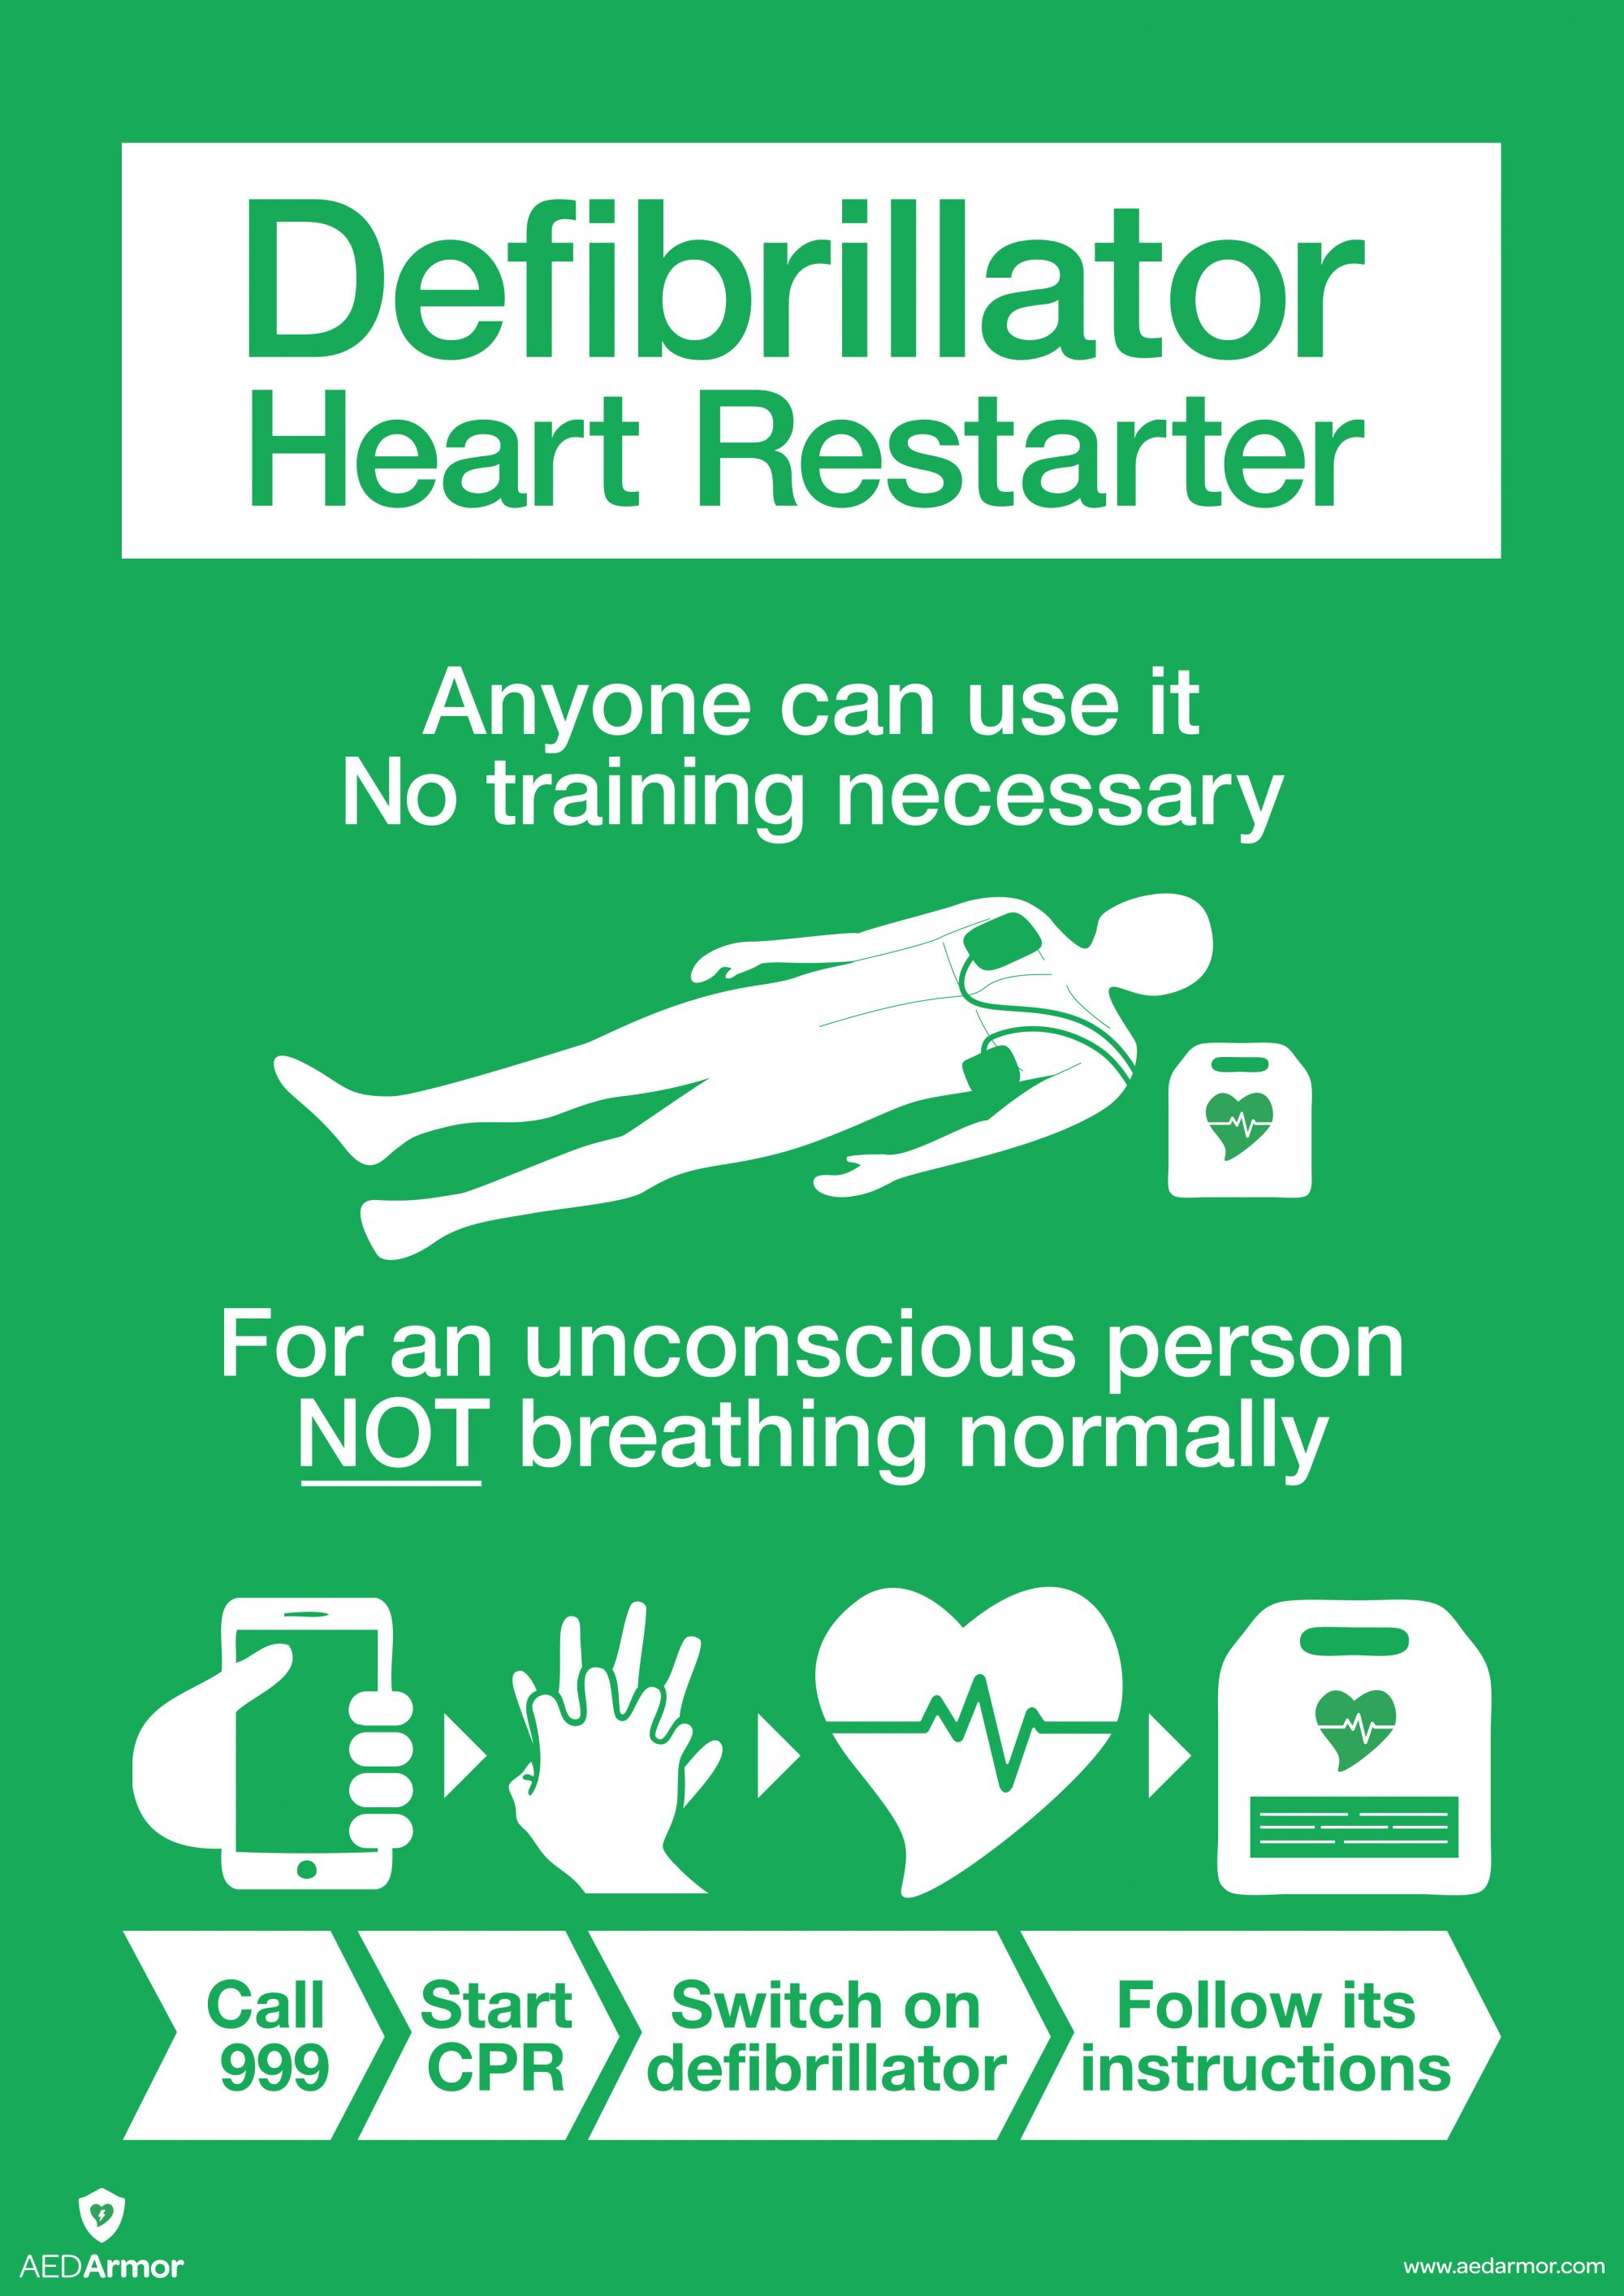 AED Armor A3 Defibrillator Poster BHF